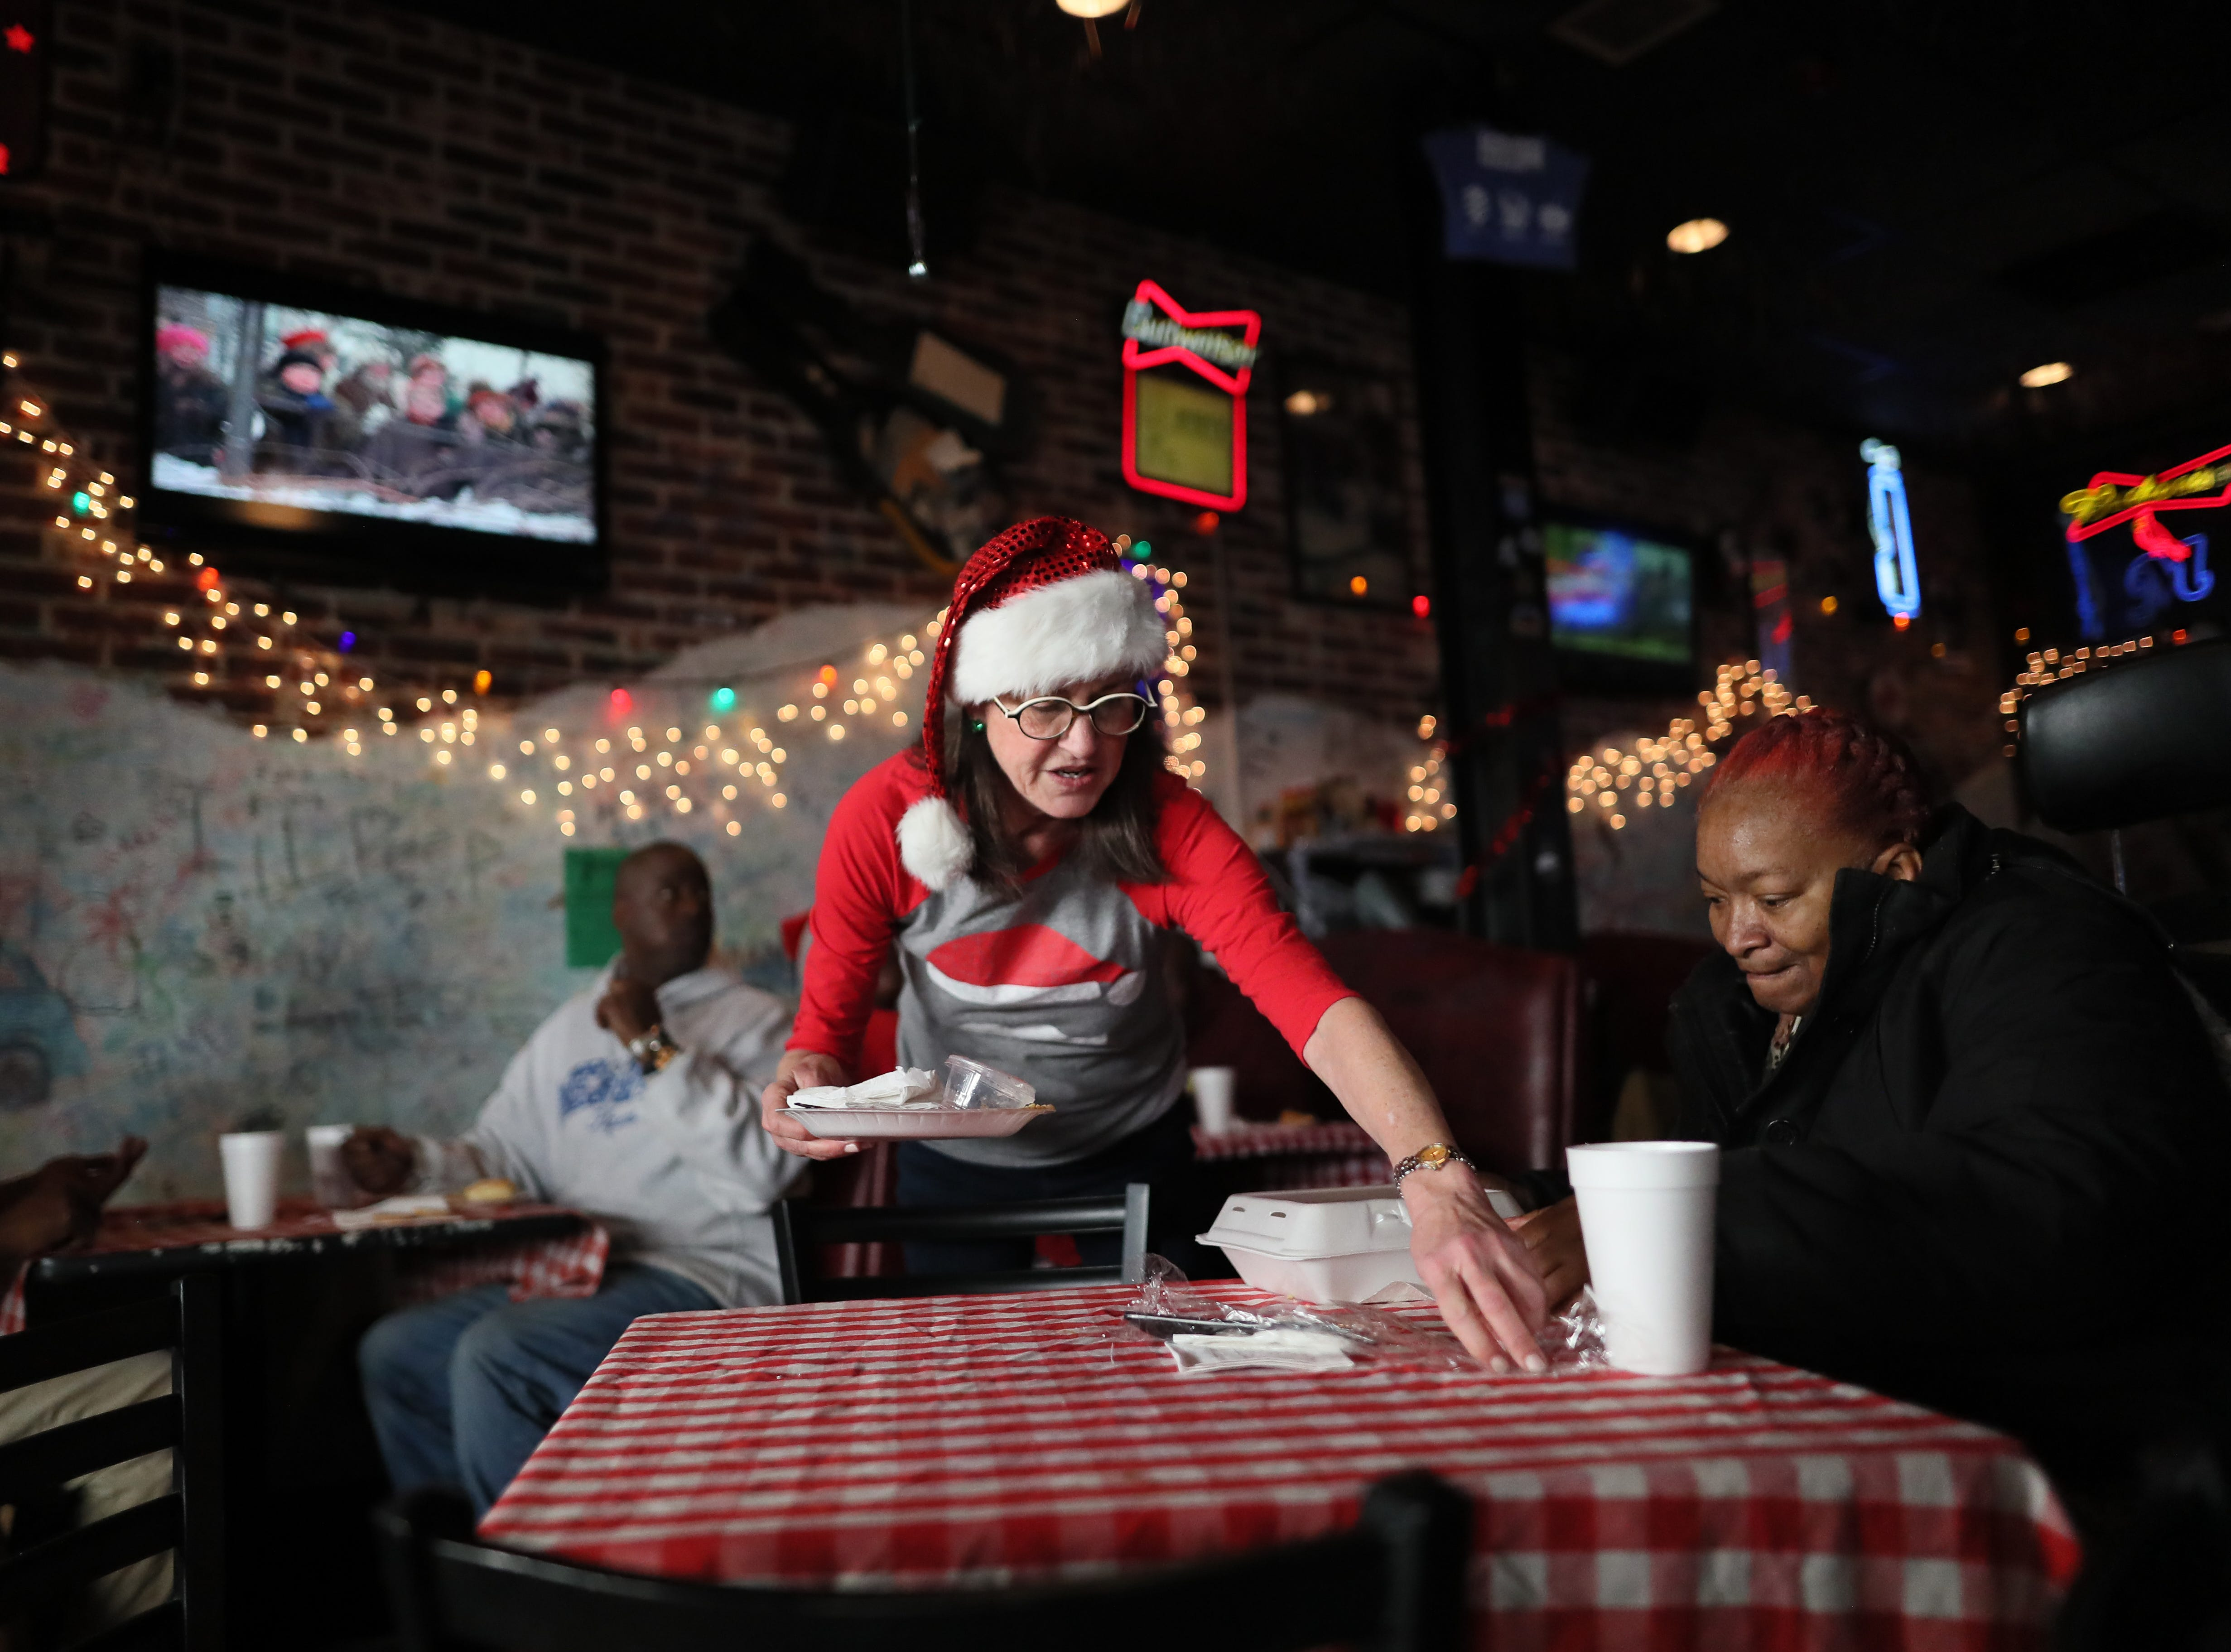 Owner Wight Boggs opens up Huey's Downtown restaurant on Christmas Day to serve free meals and hand out warm clothing Tuesday, Dec. 25, 2018.